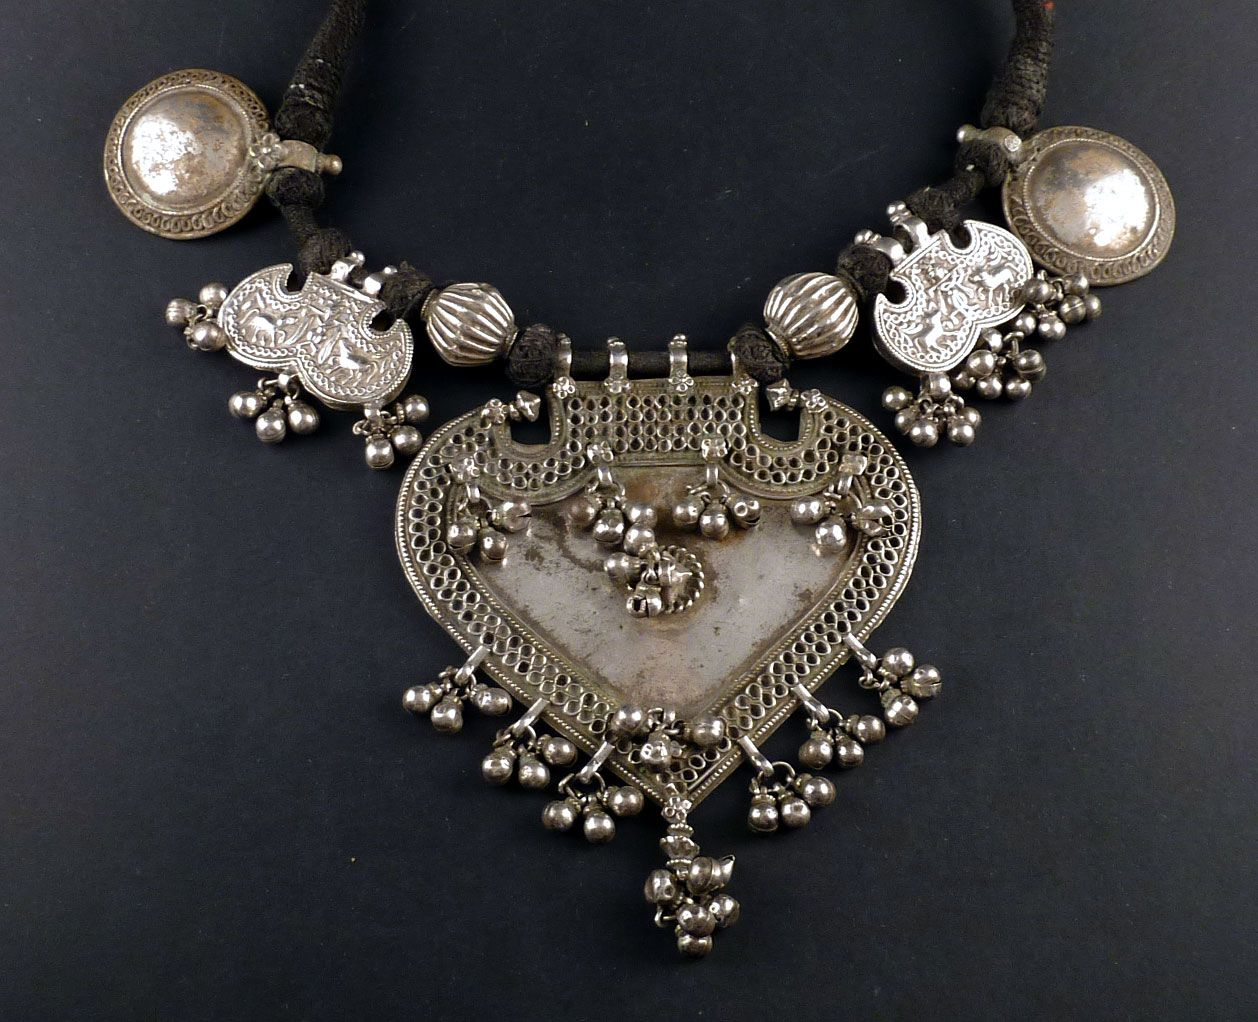 Rajasthani old silver amulet pendants and necklace, India ...